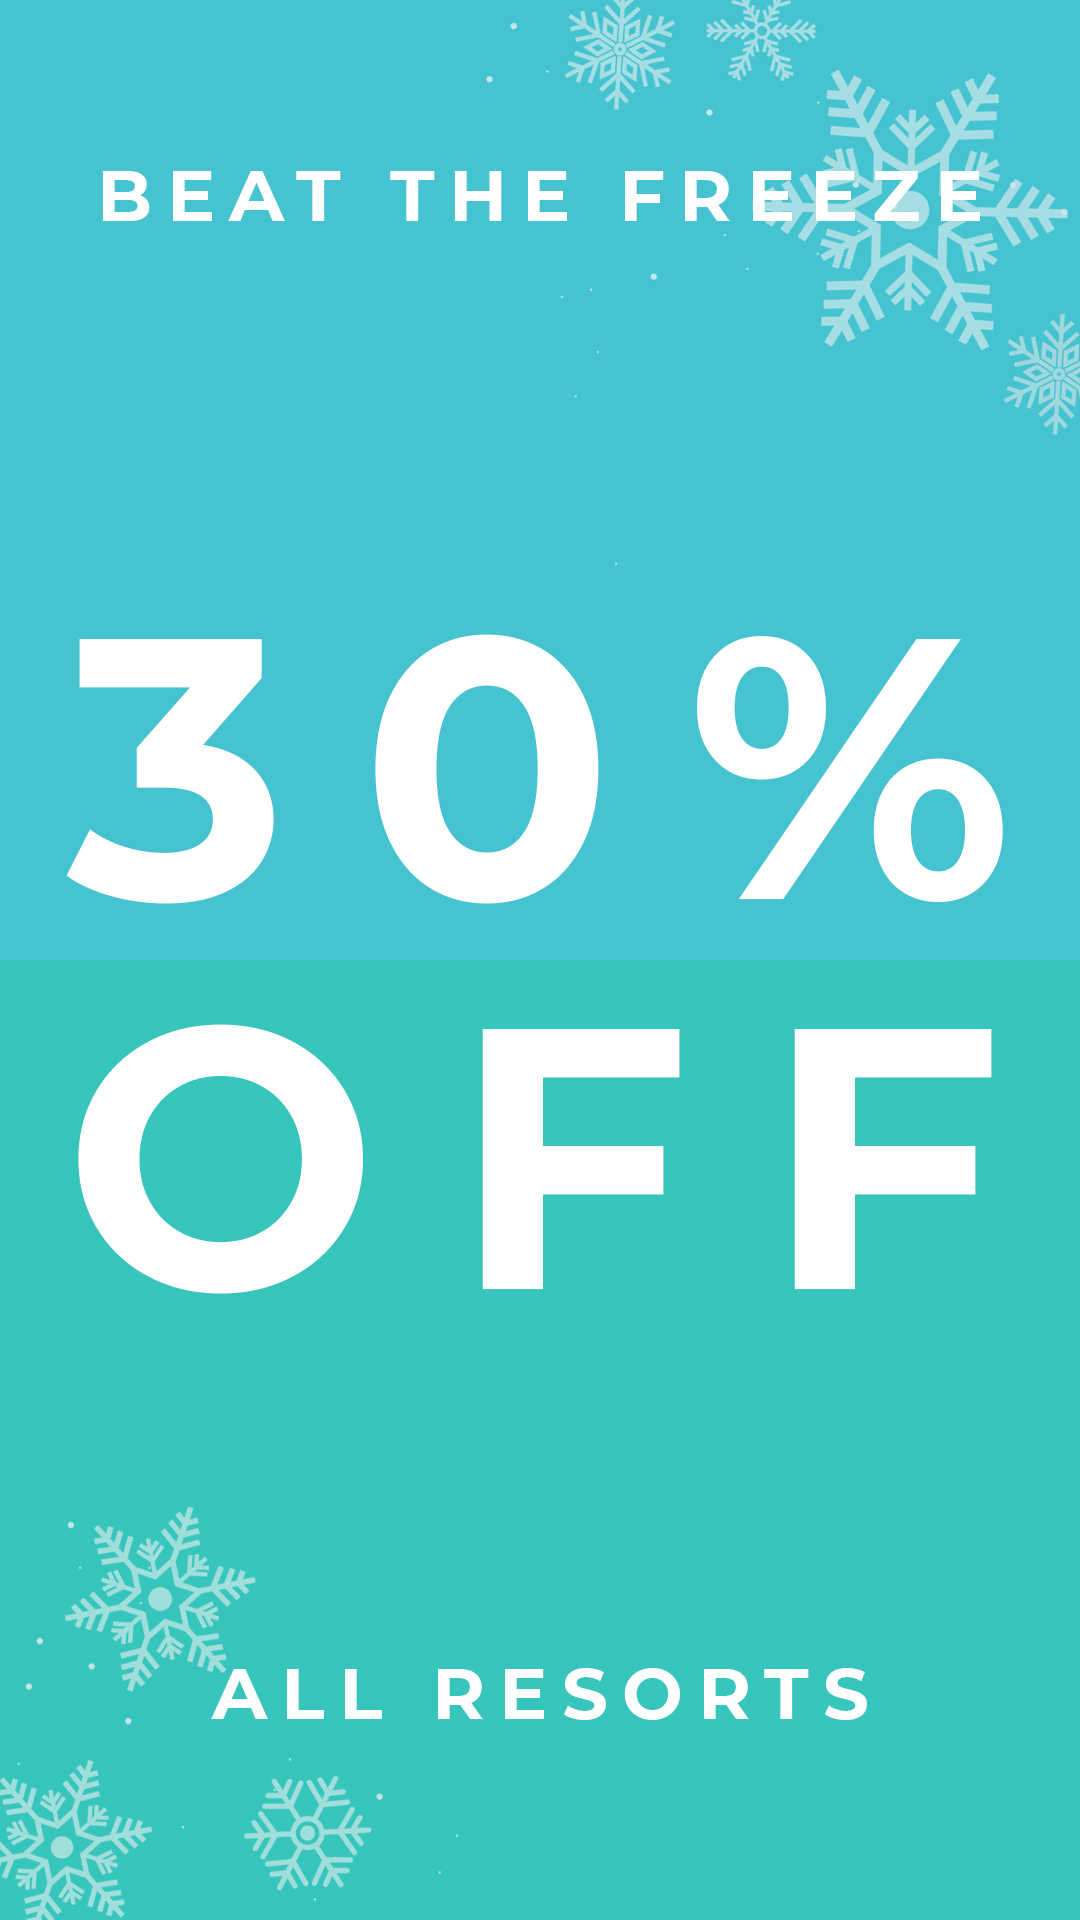 Instagram Story 30% Off (1)